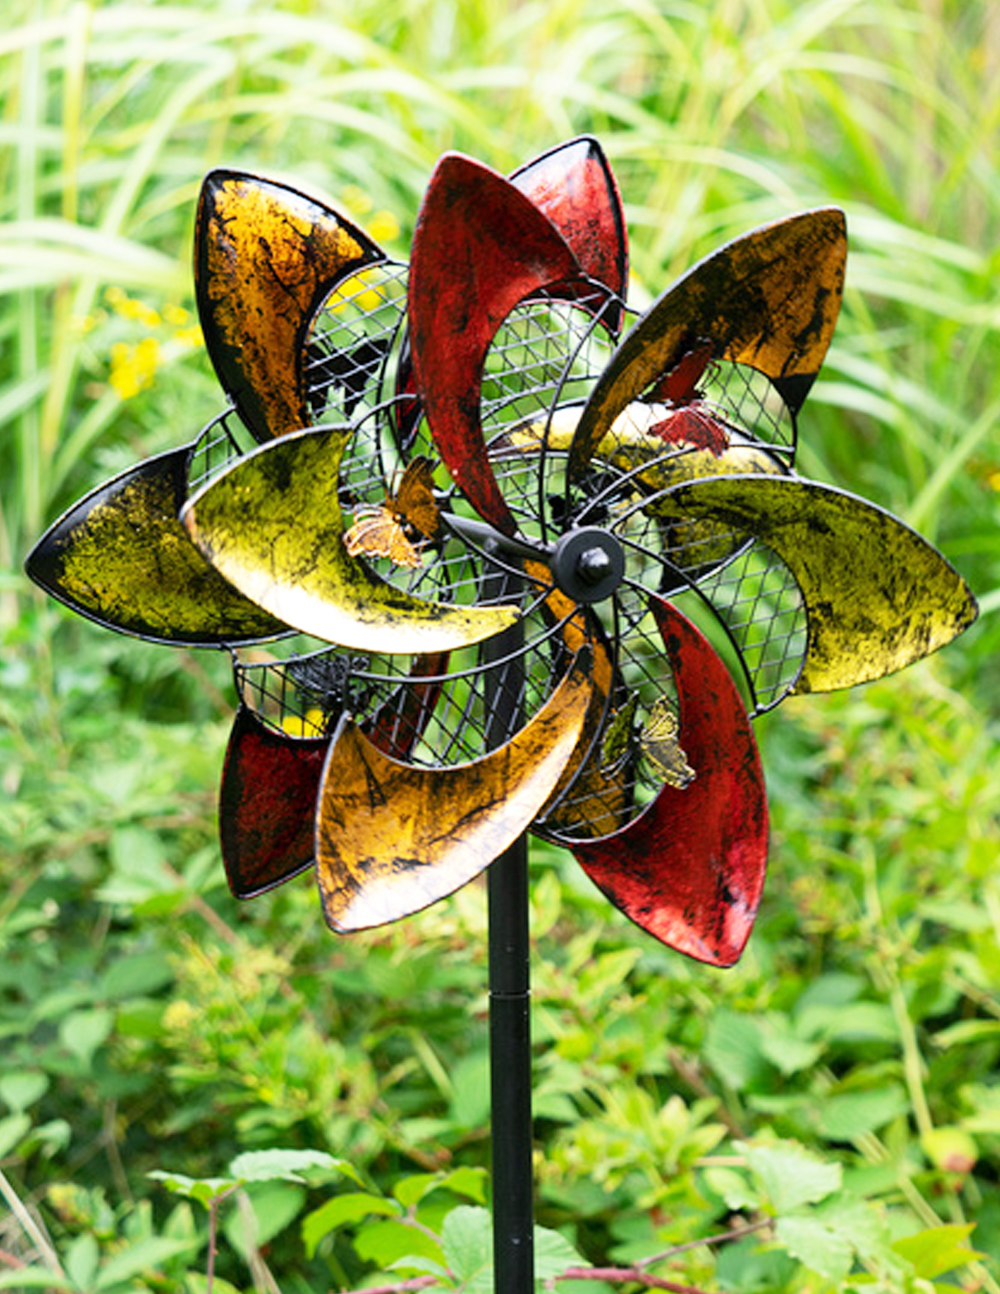 SP585 Windmill Sails Garden Wind Sculpture 1 | Avant Garden